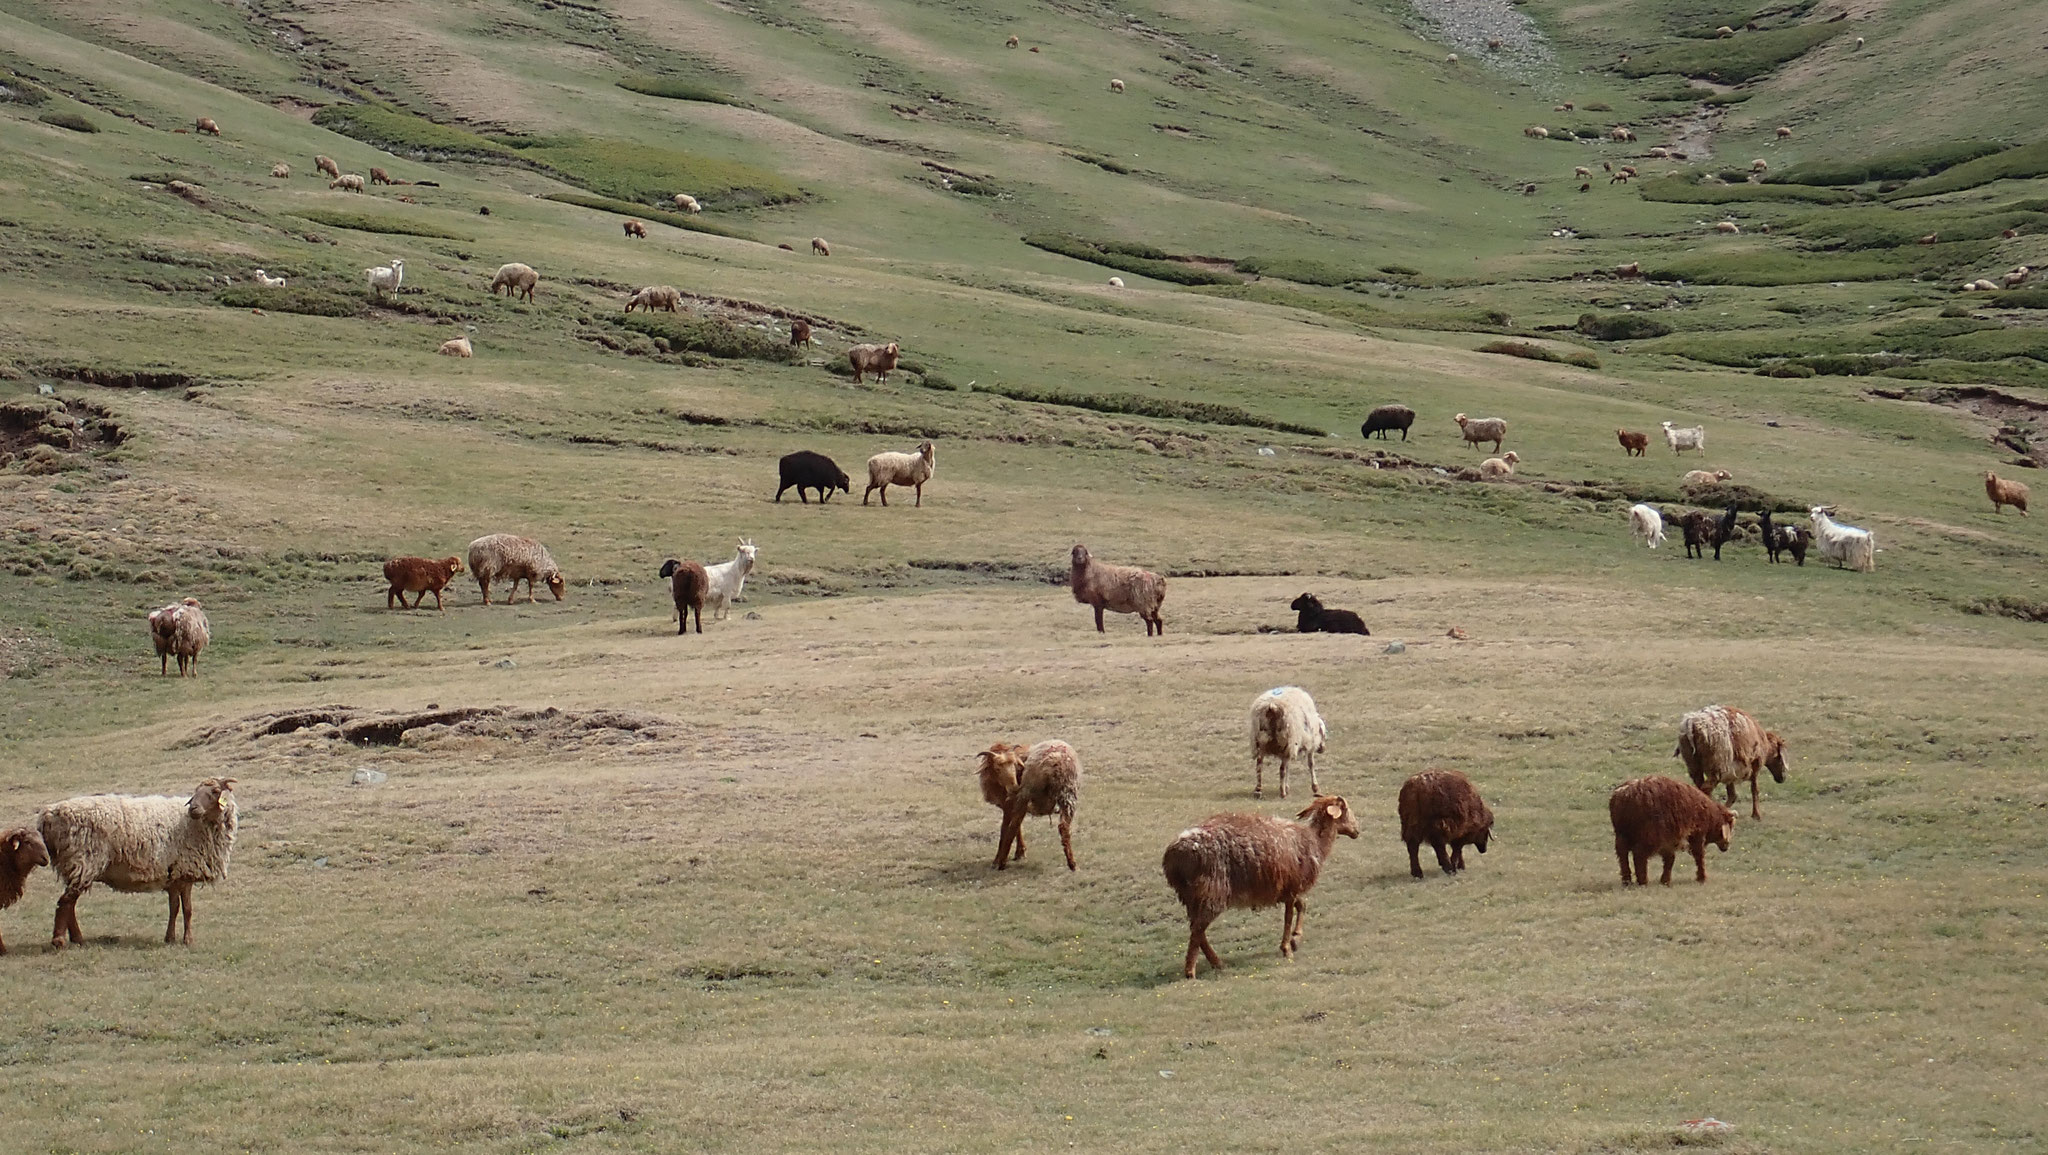 Sheep were grazing throughout the mountain pass.